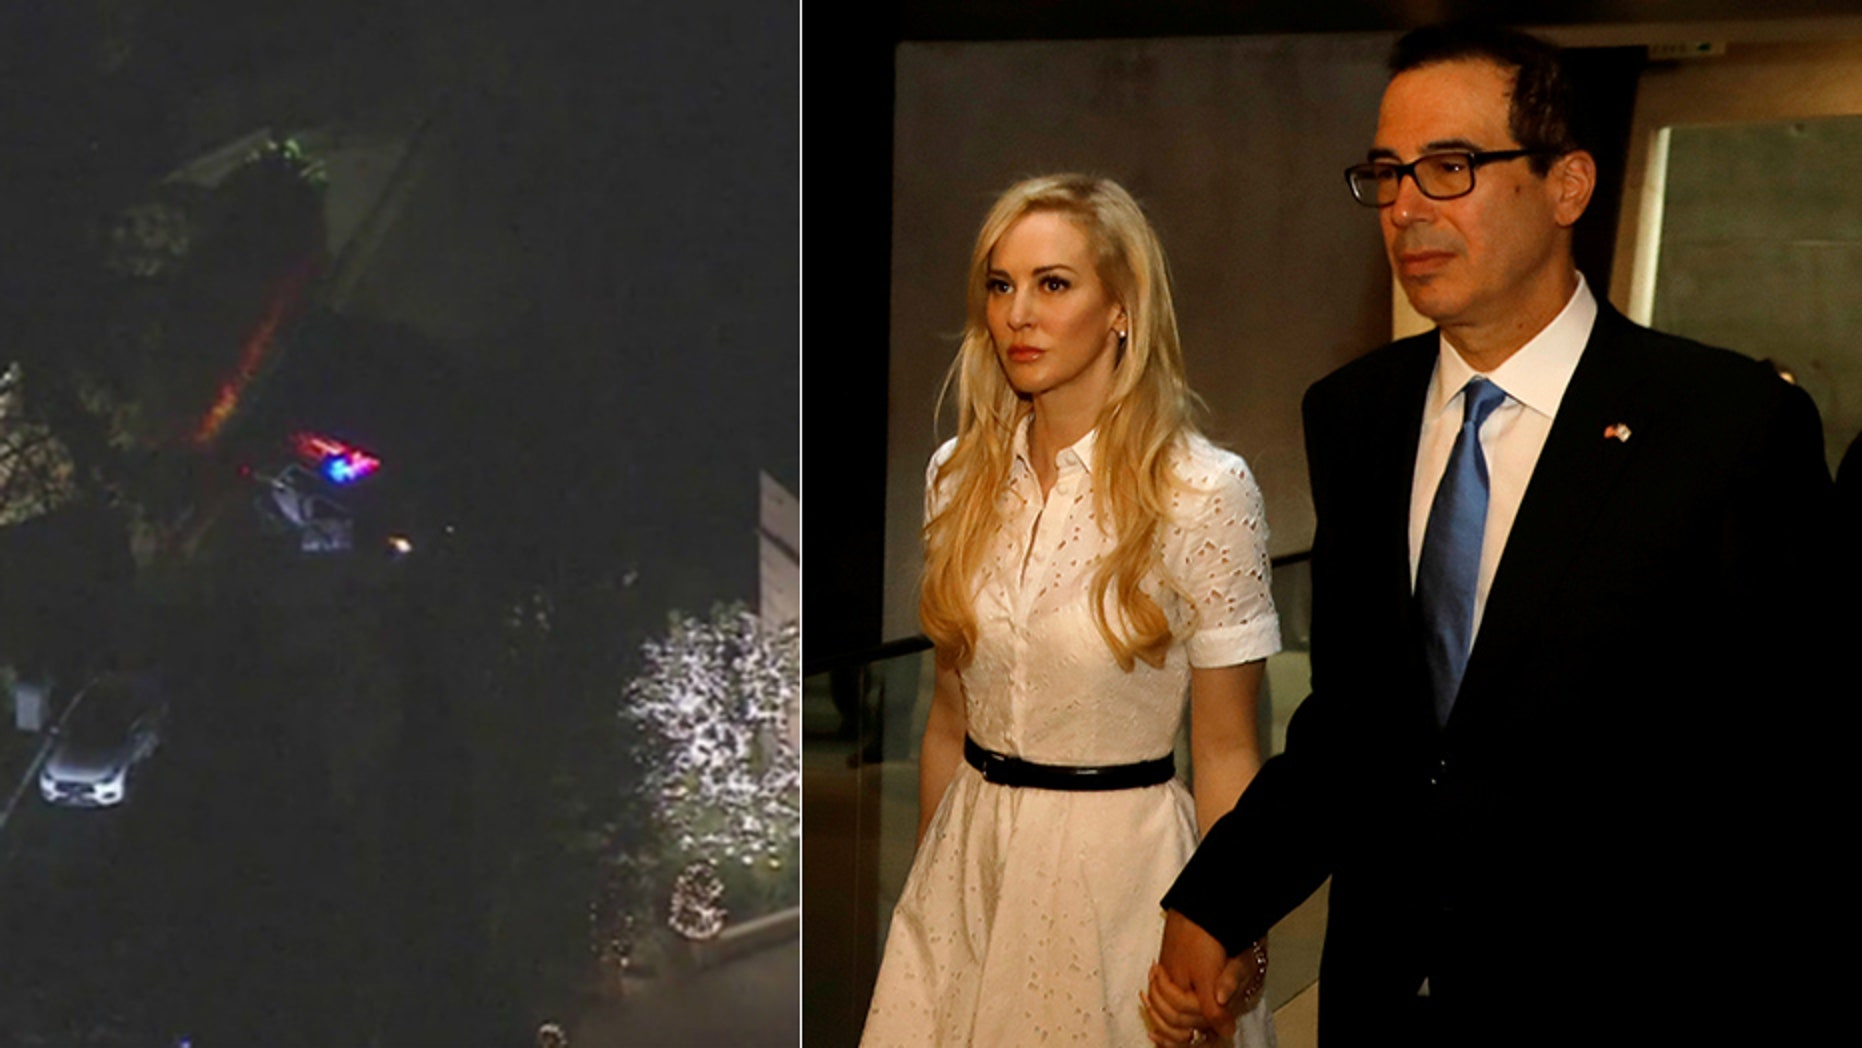 A bomb squad investigating a suspicious package left outside the home of Treasury Secretary Steven Mnuchin and his wife, Louise Linton, found that it was horse manure.